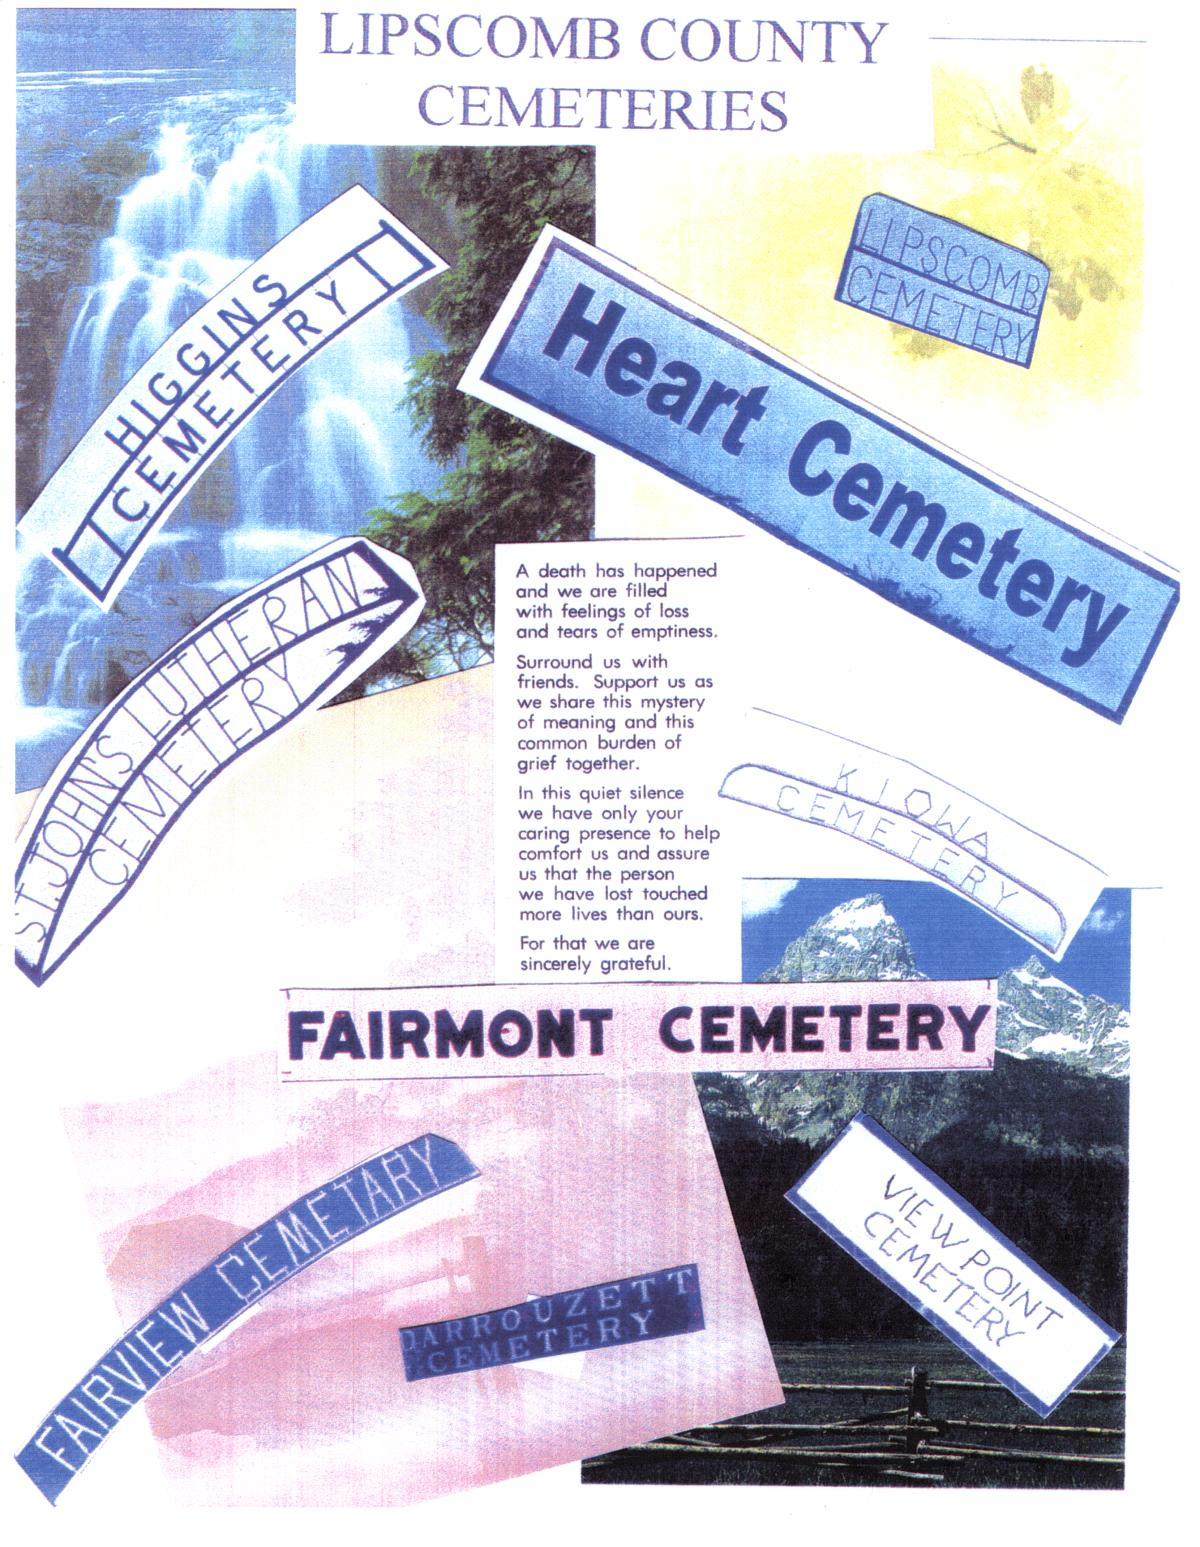 Lipscomb County Cemeteries                                                                                                      Front Cover